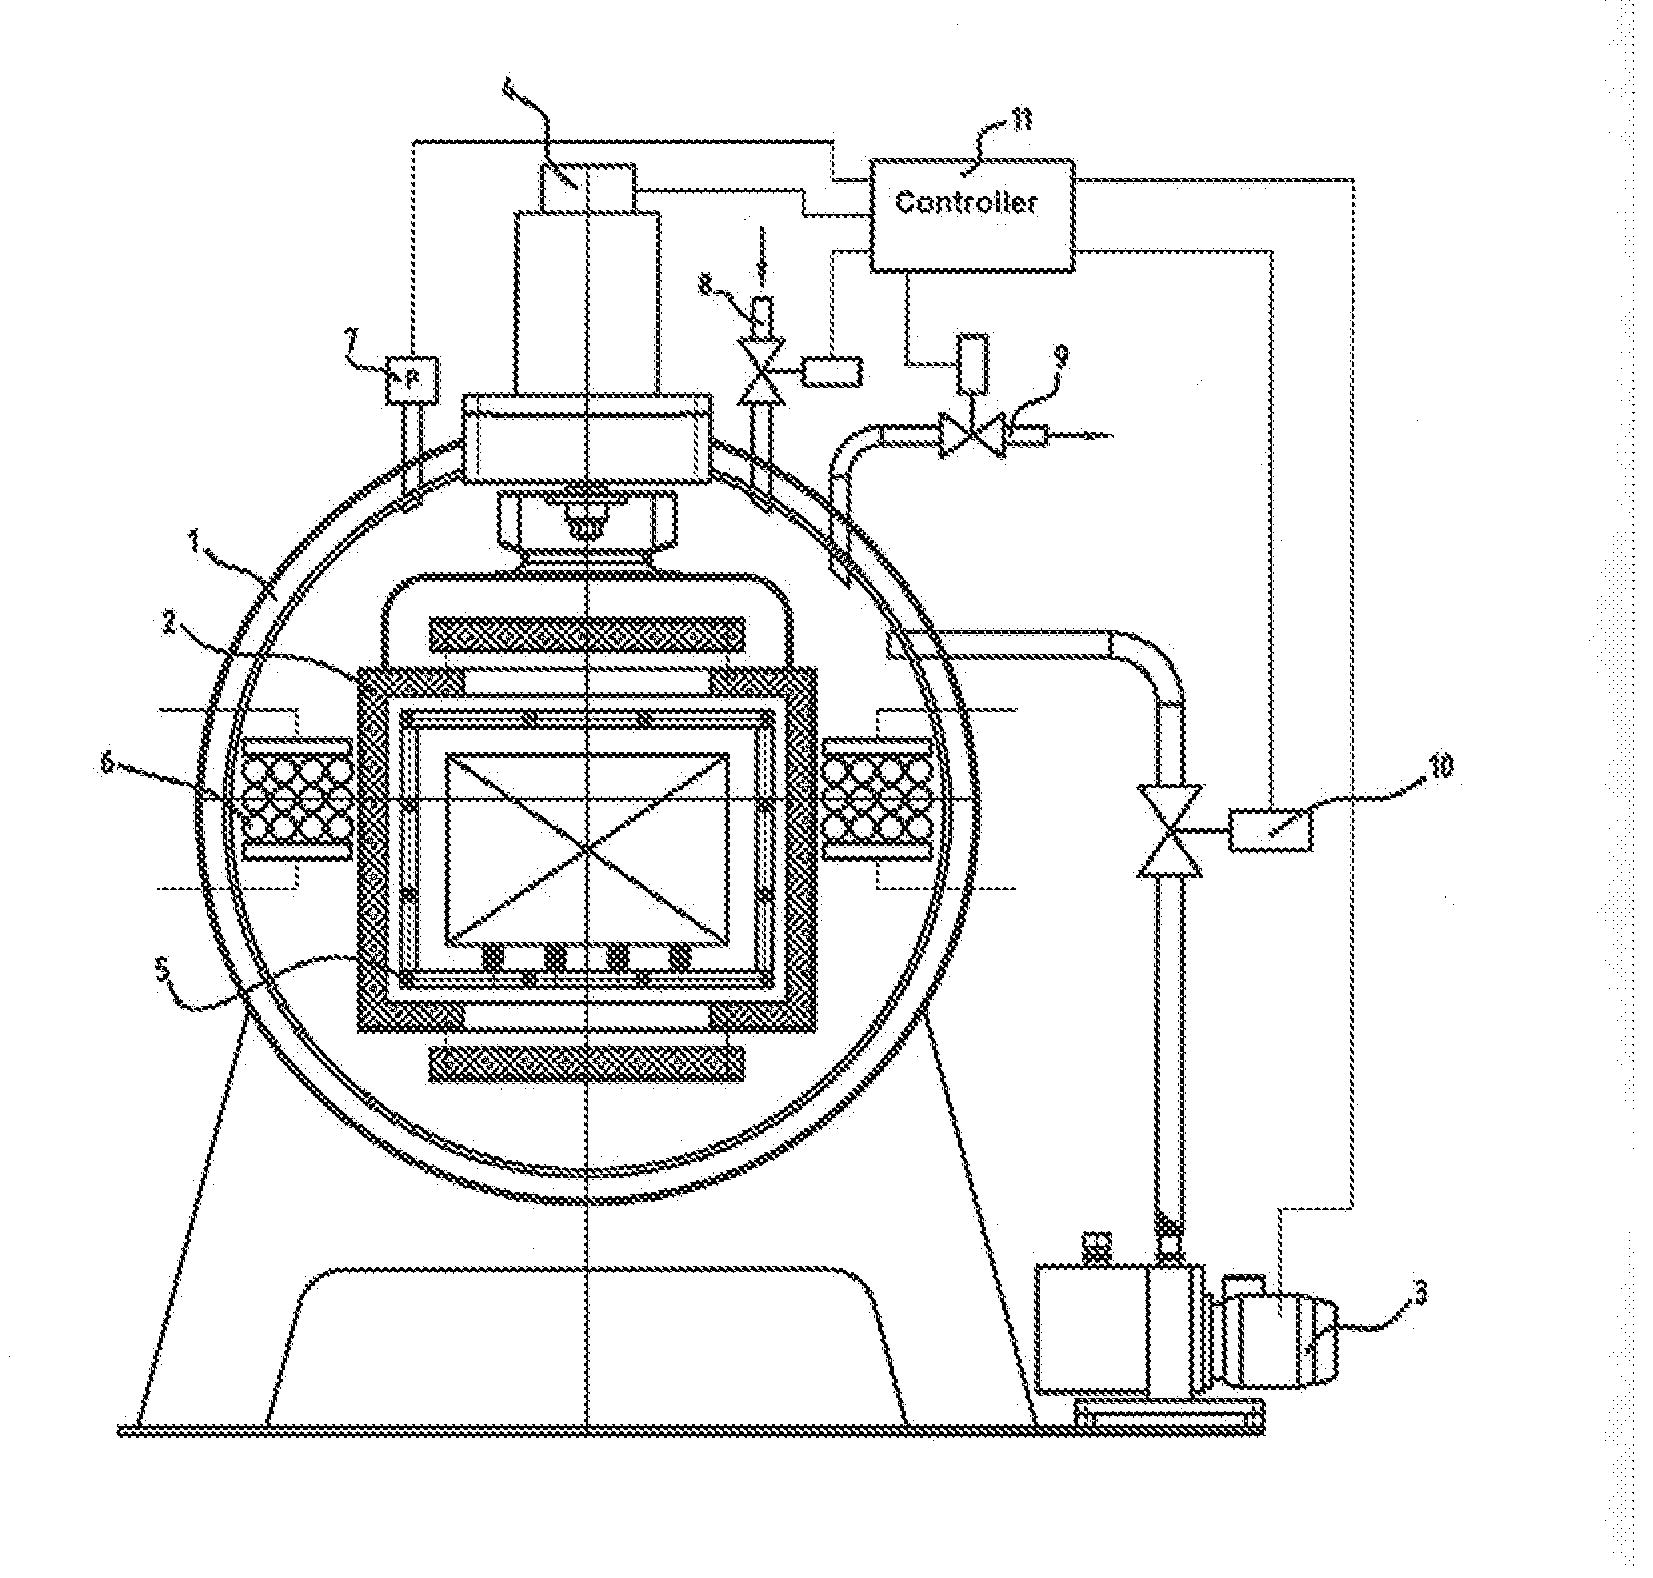 Induction Melting Furnace Schematic, Induction, Get Free